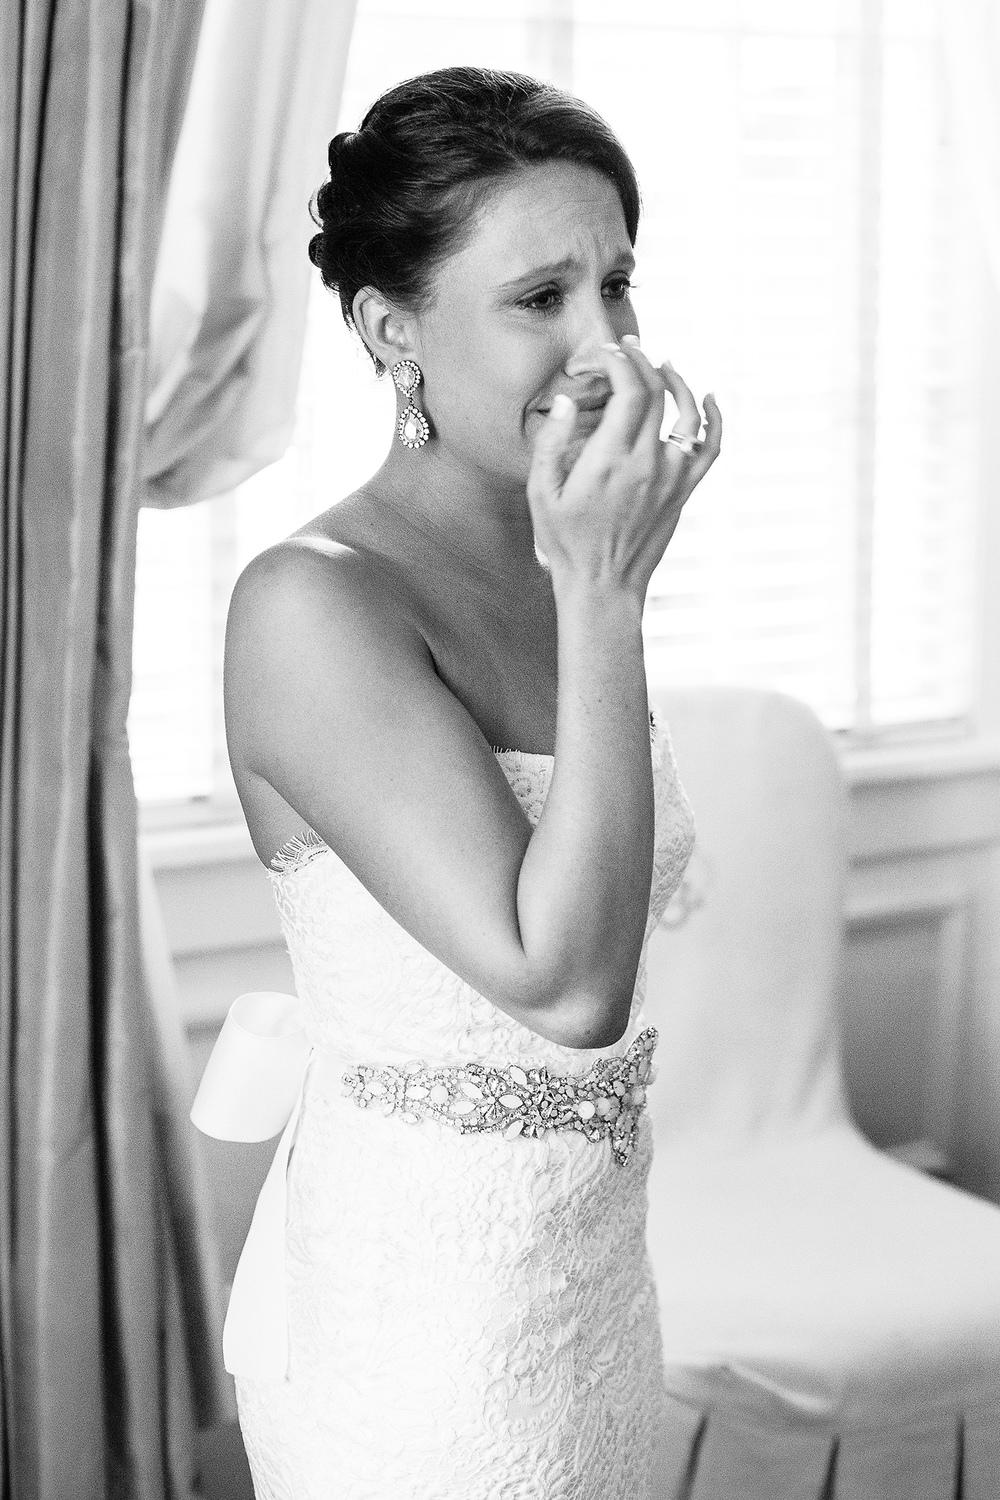 Bride Tearing Up when her Bridesmaids See Her